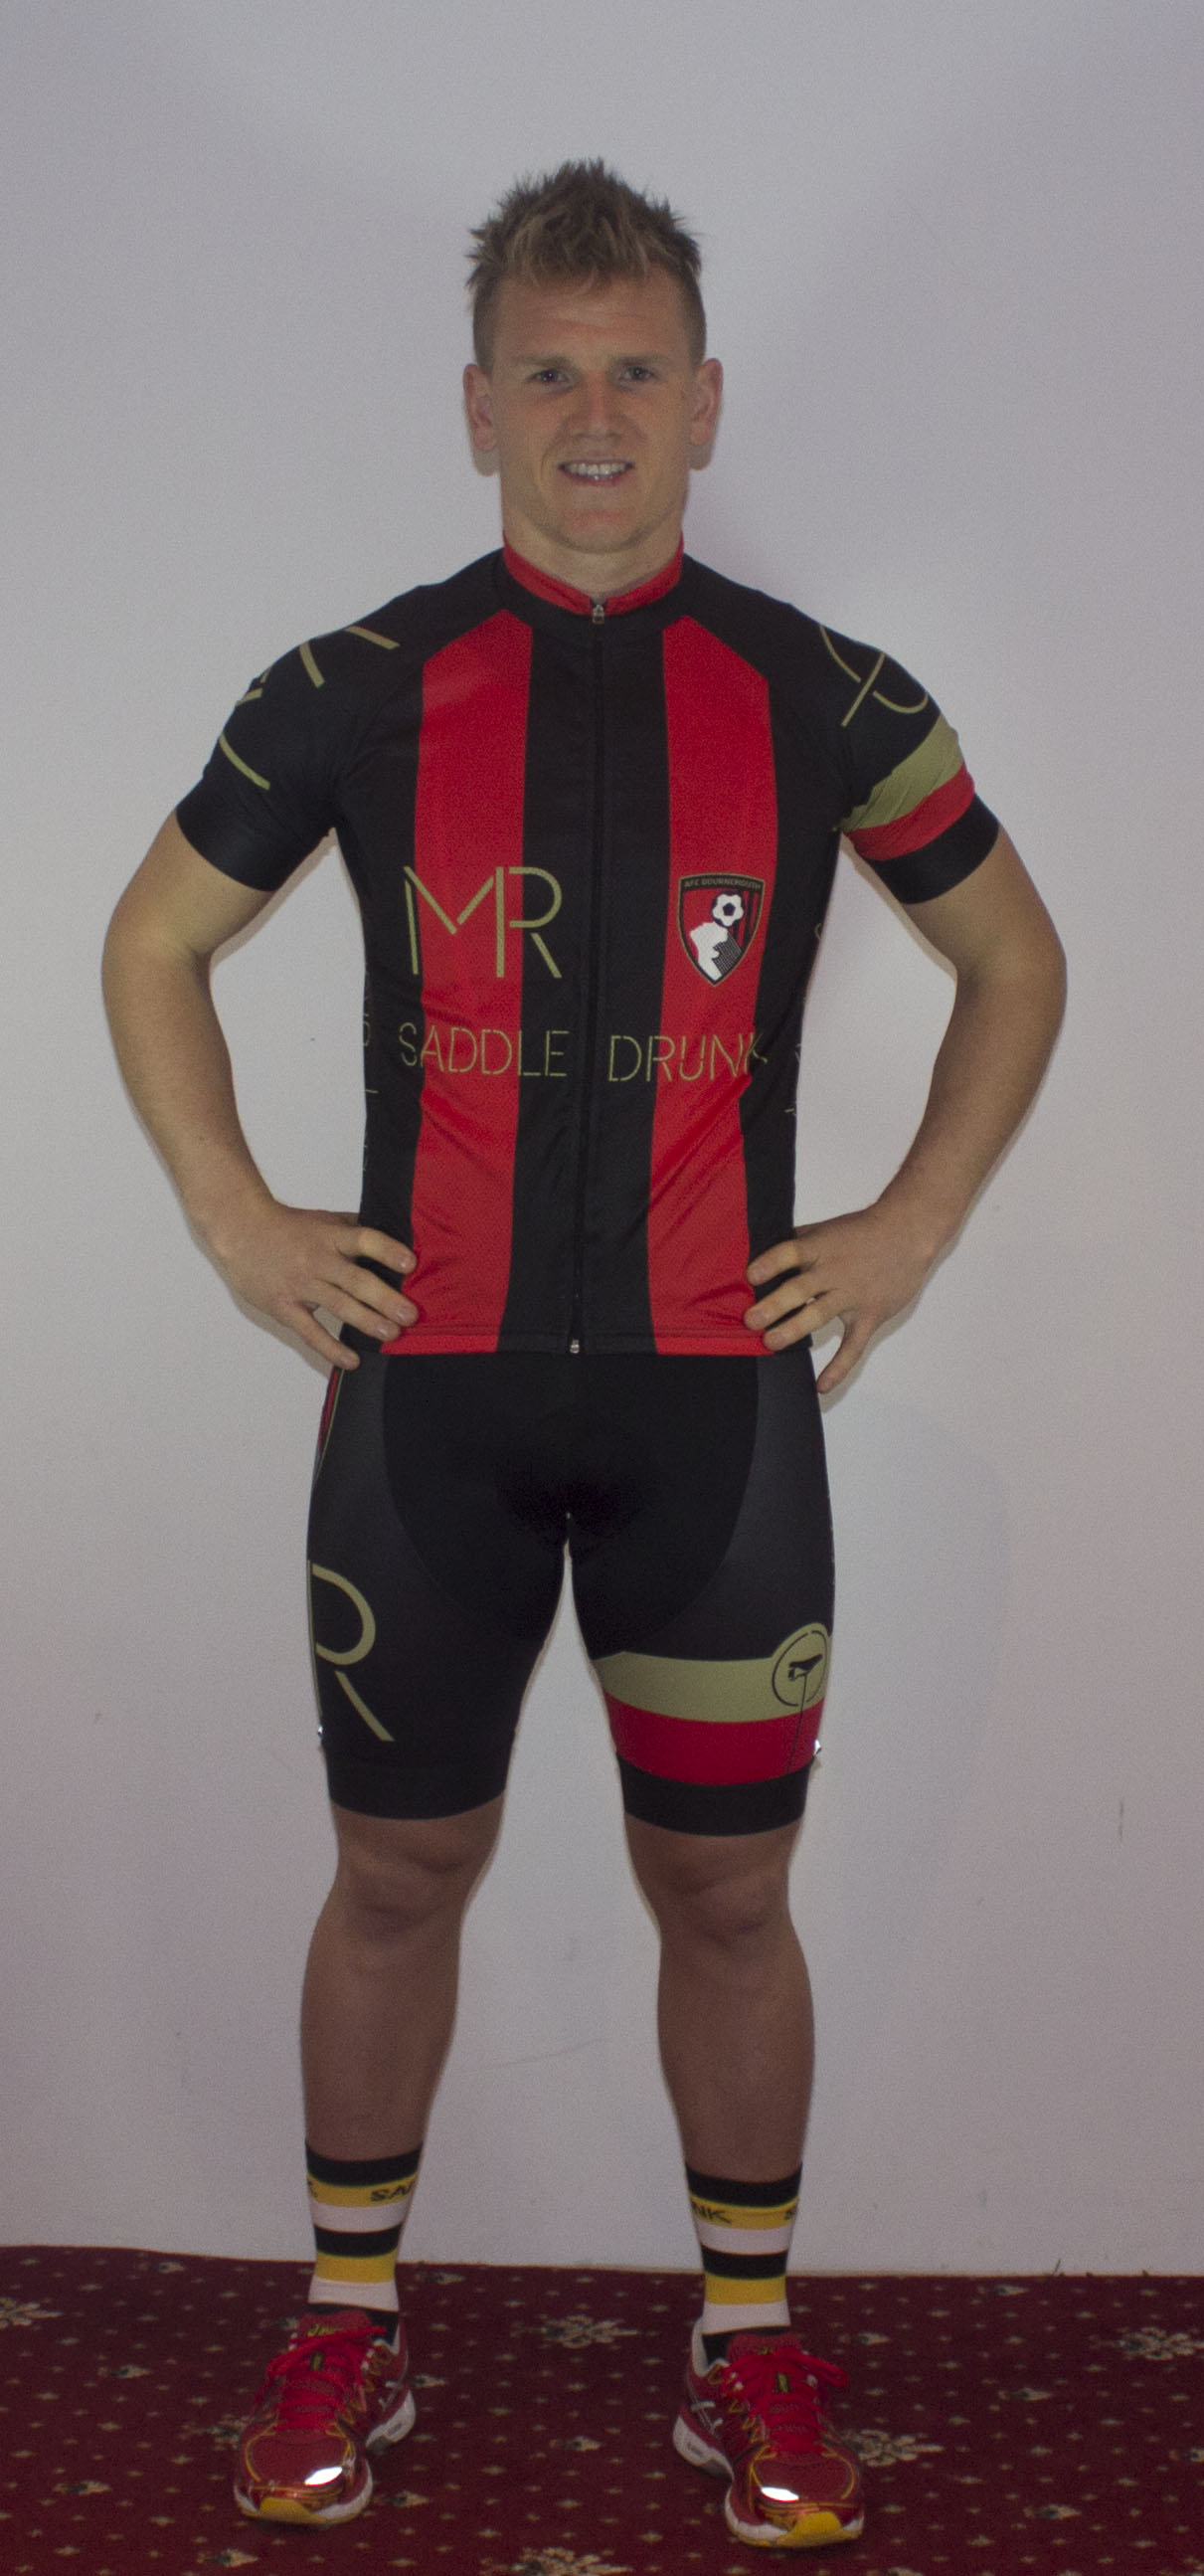 Matt wearing kit number